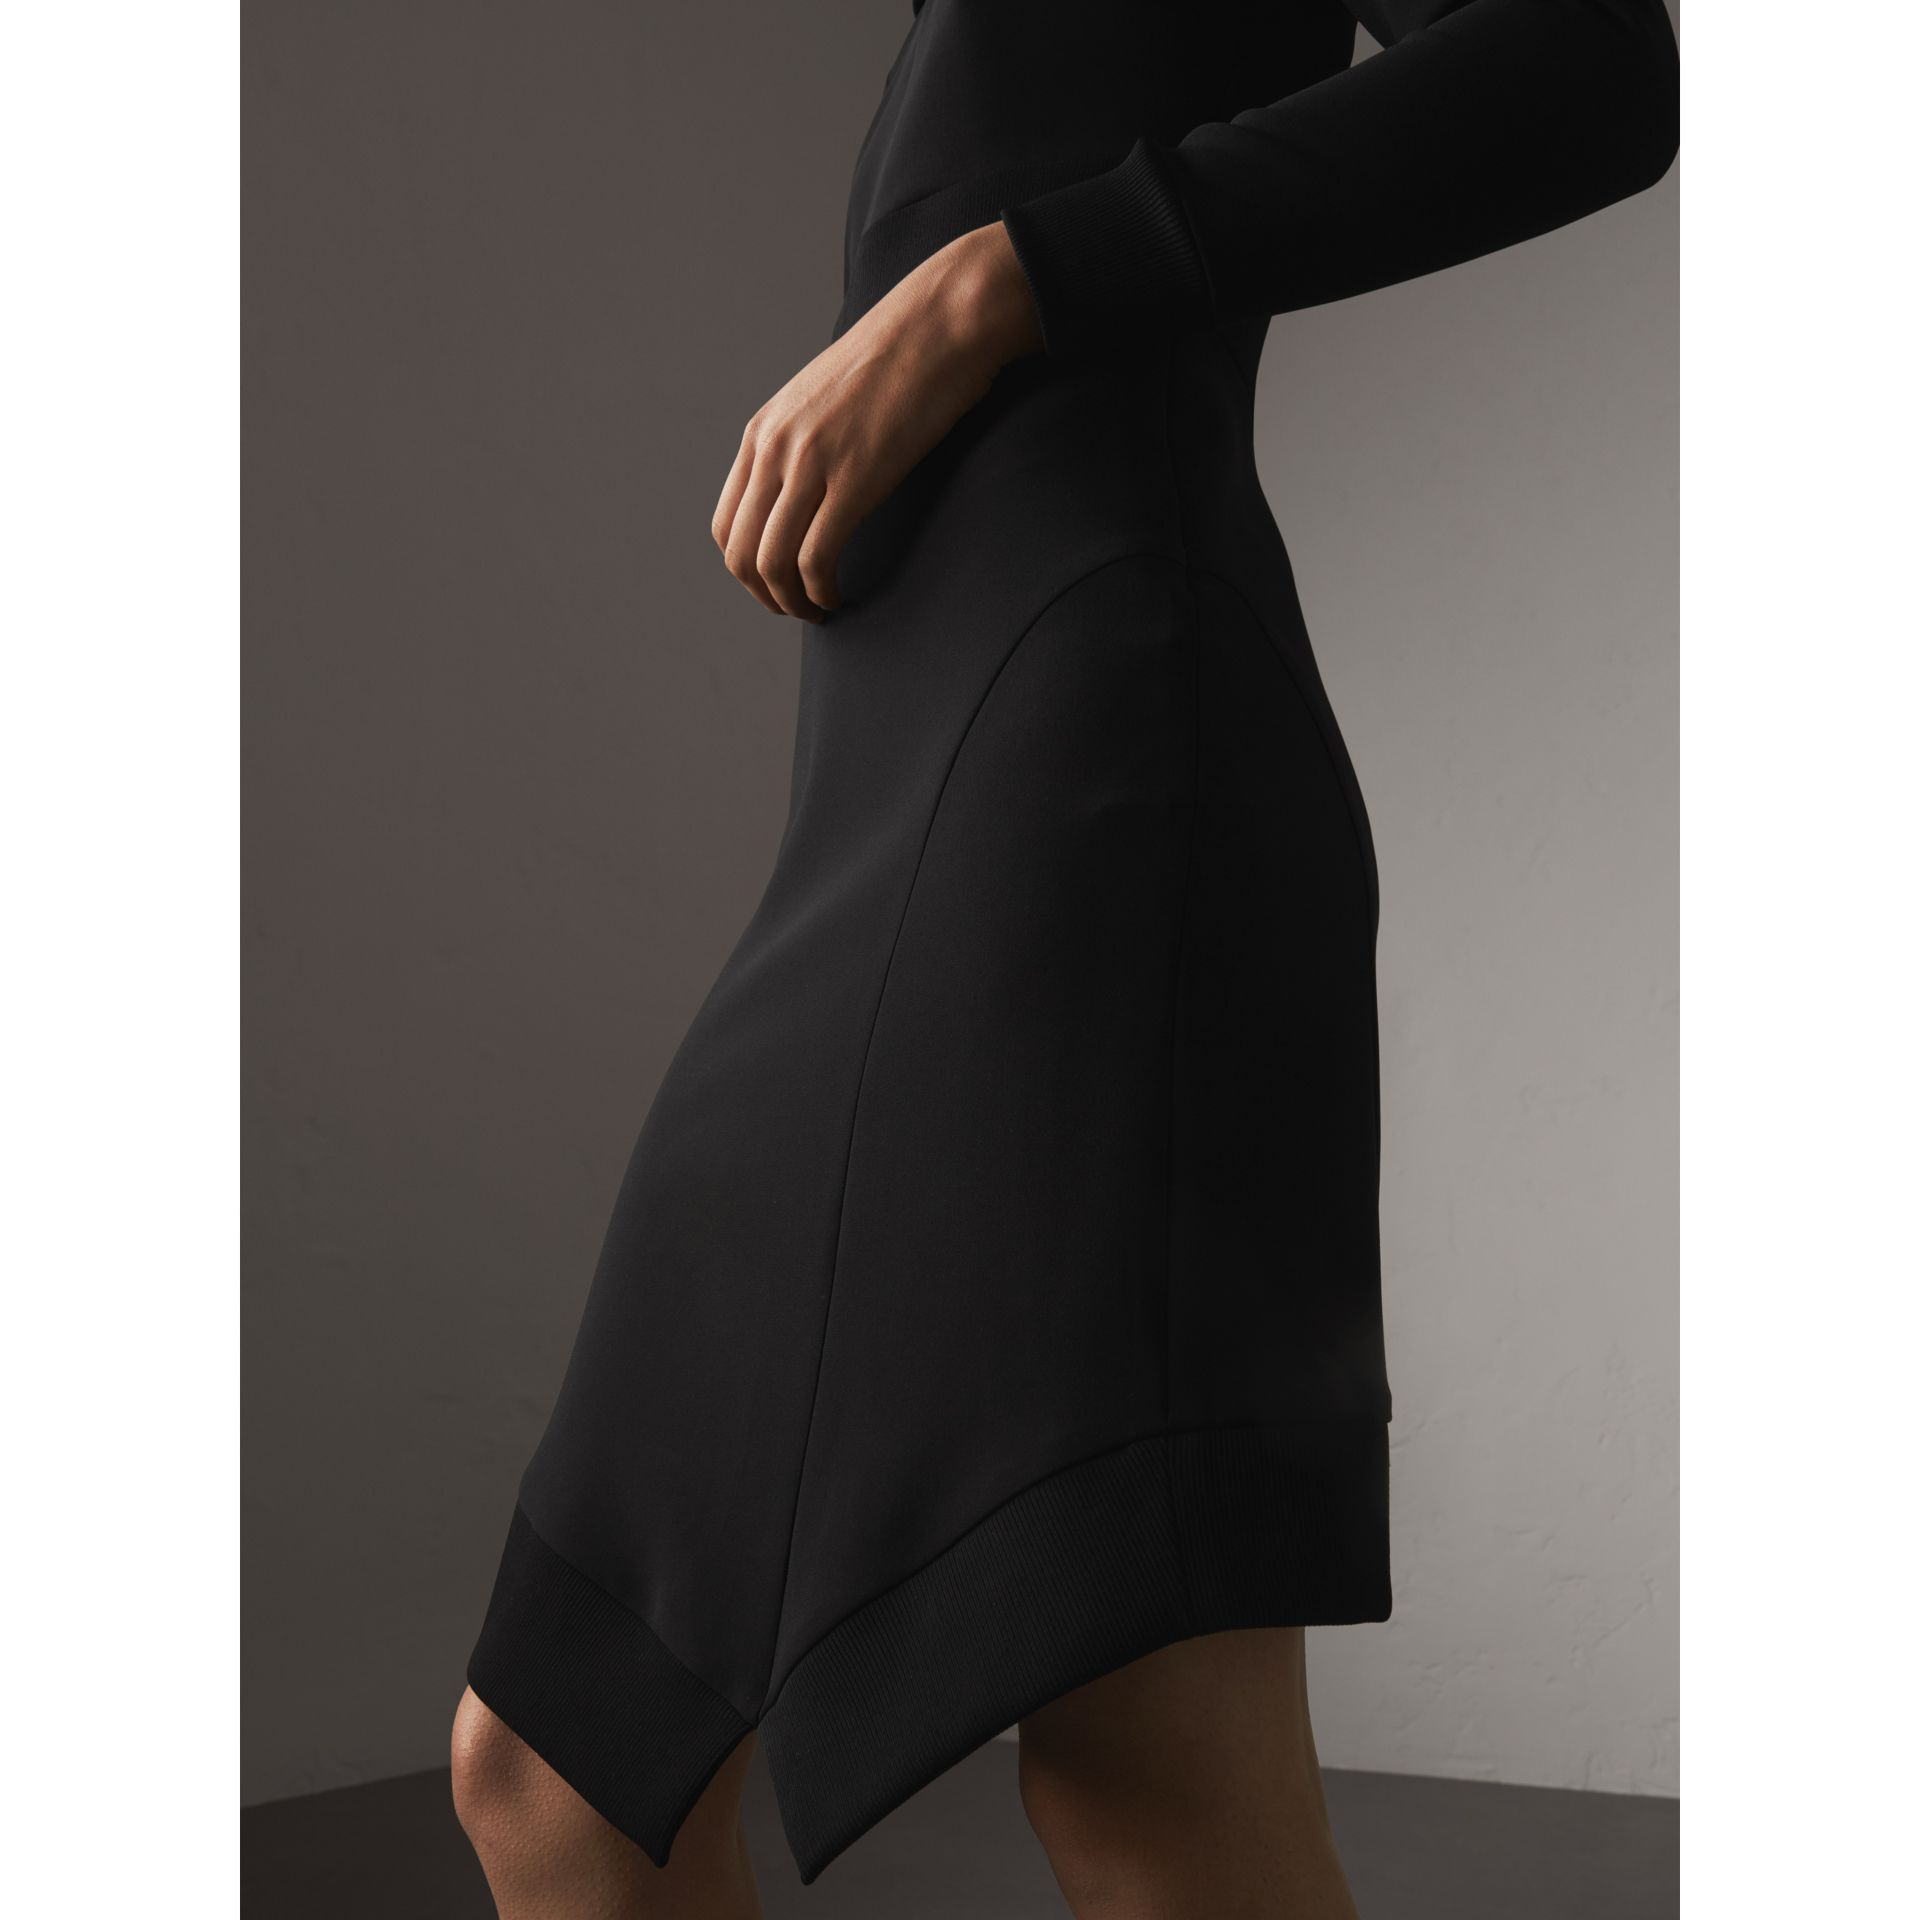 Ribbed Trim Crepe Asymmetric Dress in Black - Women | Burberry - gallery image 2